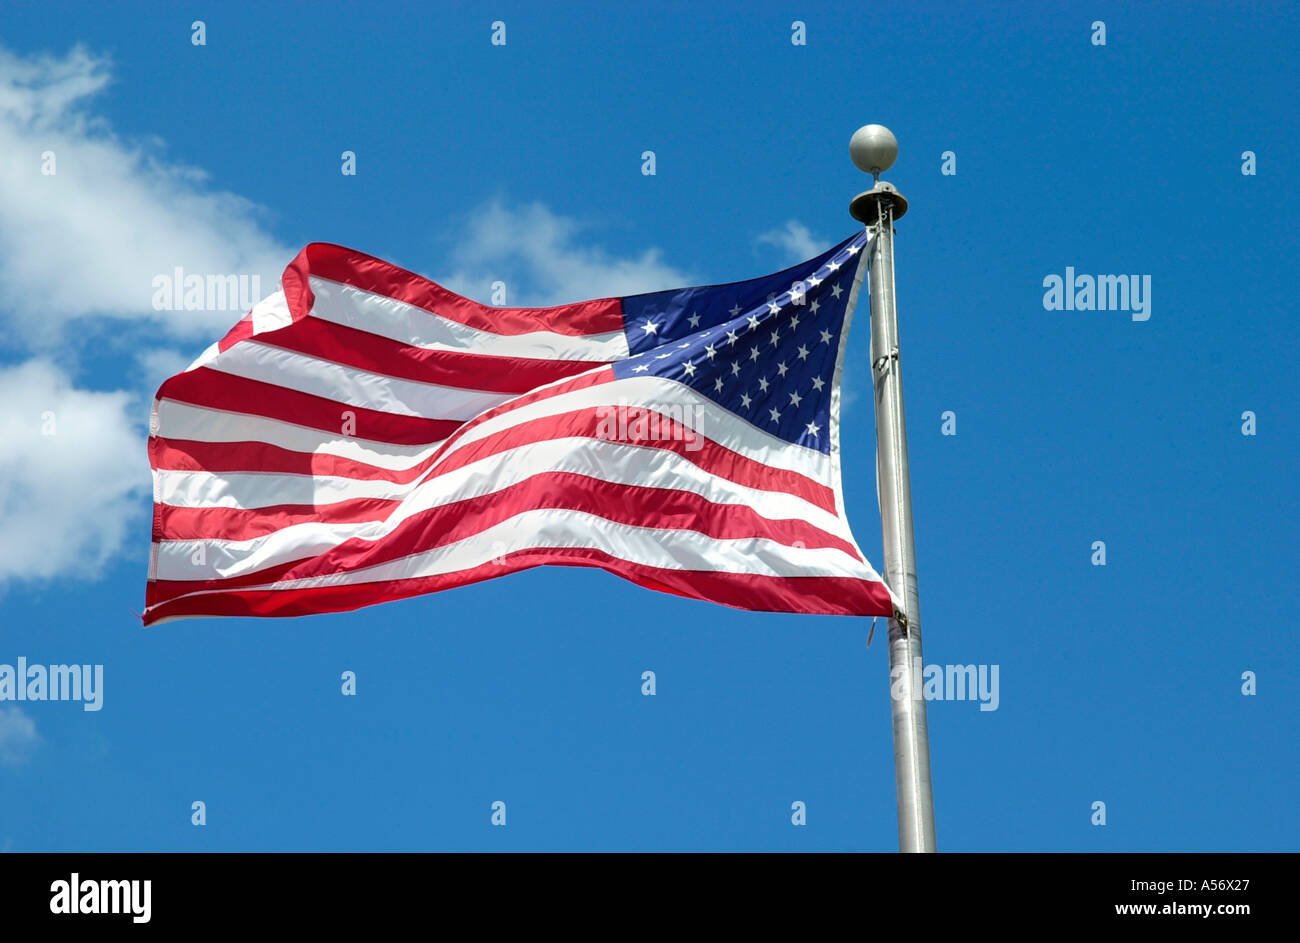 Stars and Stripes American flag, Orlando, Florida, USA - Stock Image